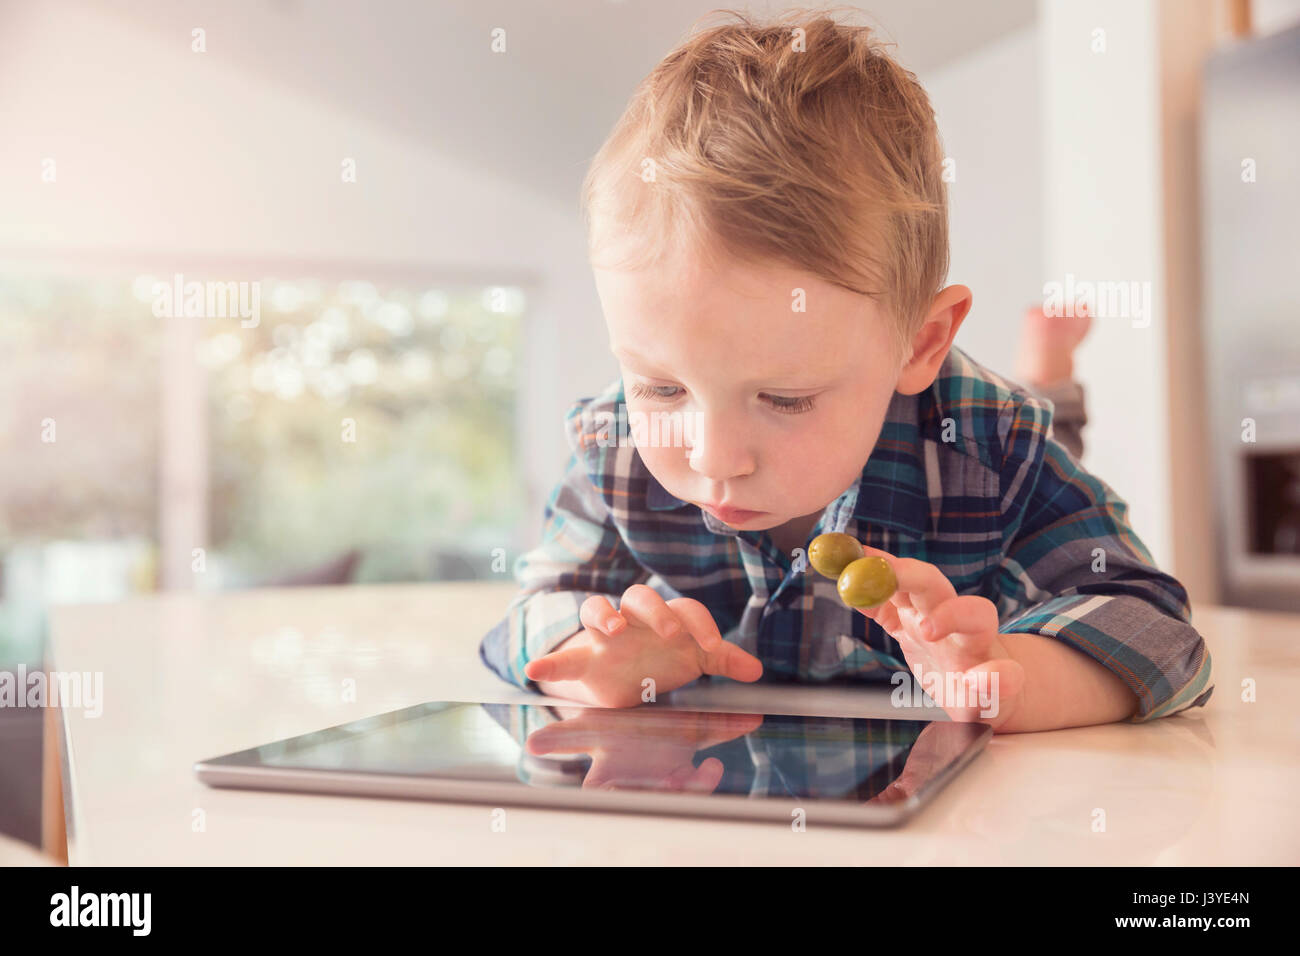 toddler boy looking at tablet eating olives in kitchen at home - Stock Image